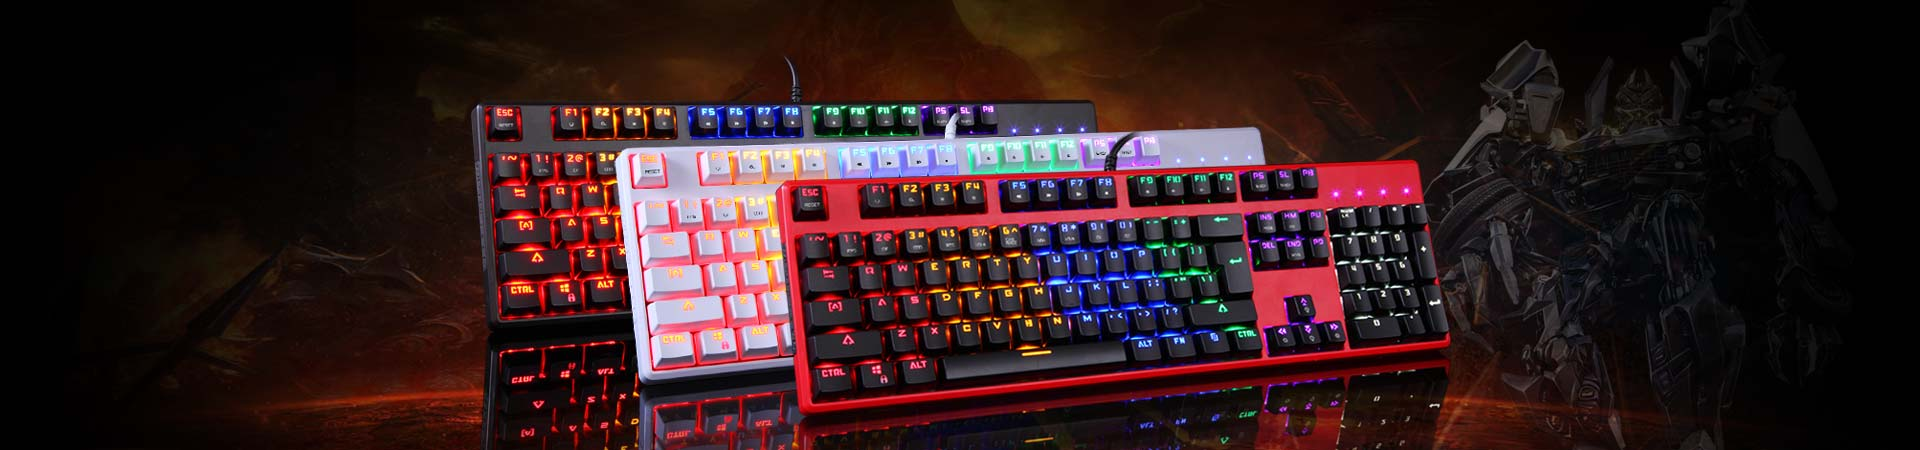 Motospeed LED Keyboards